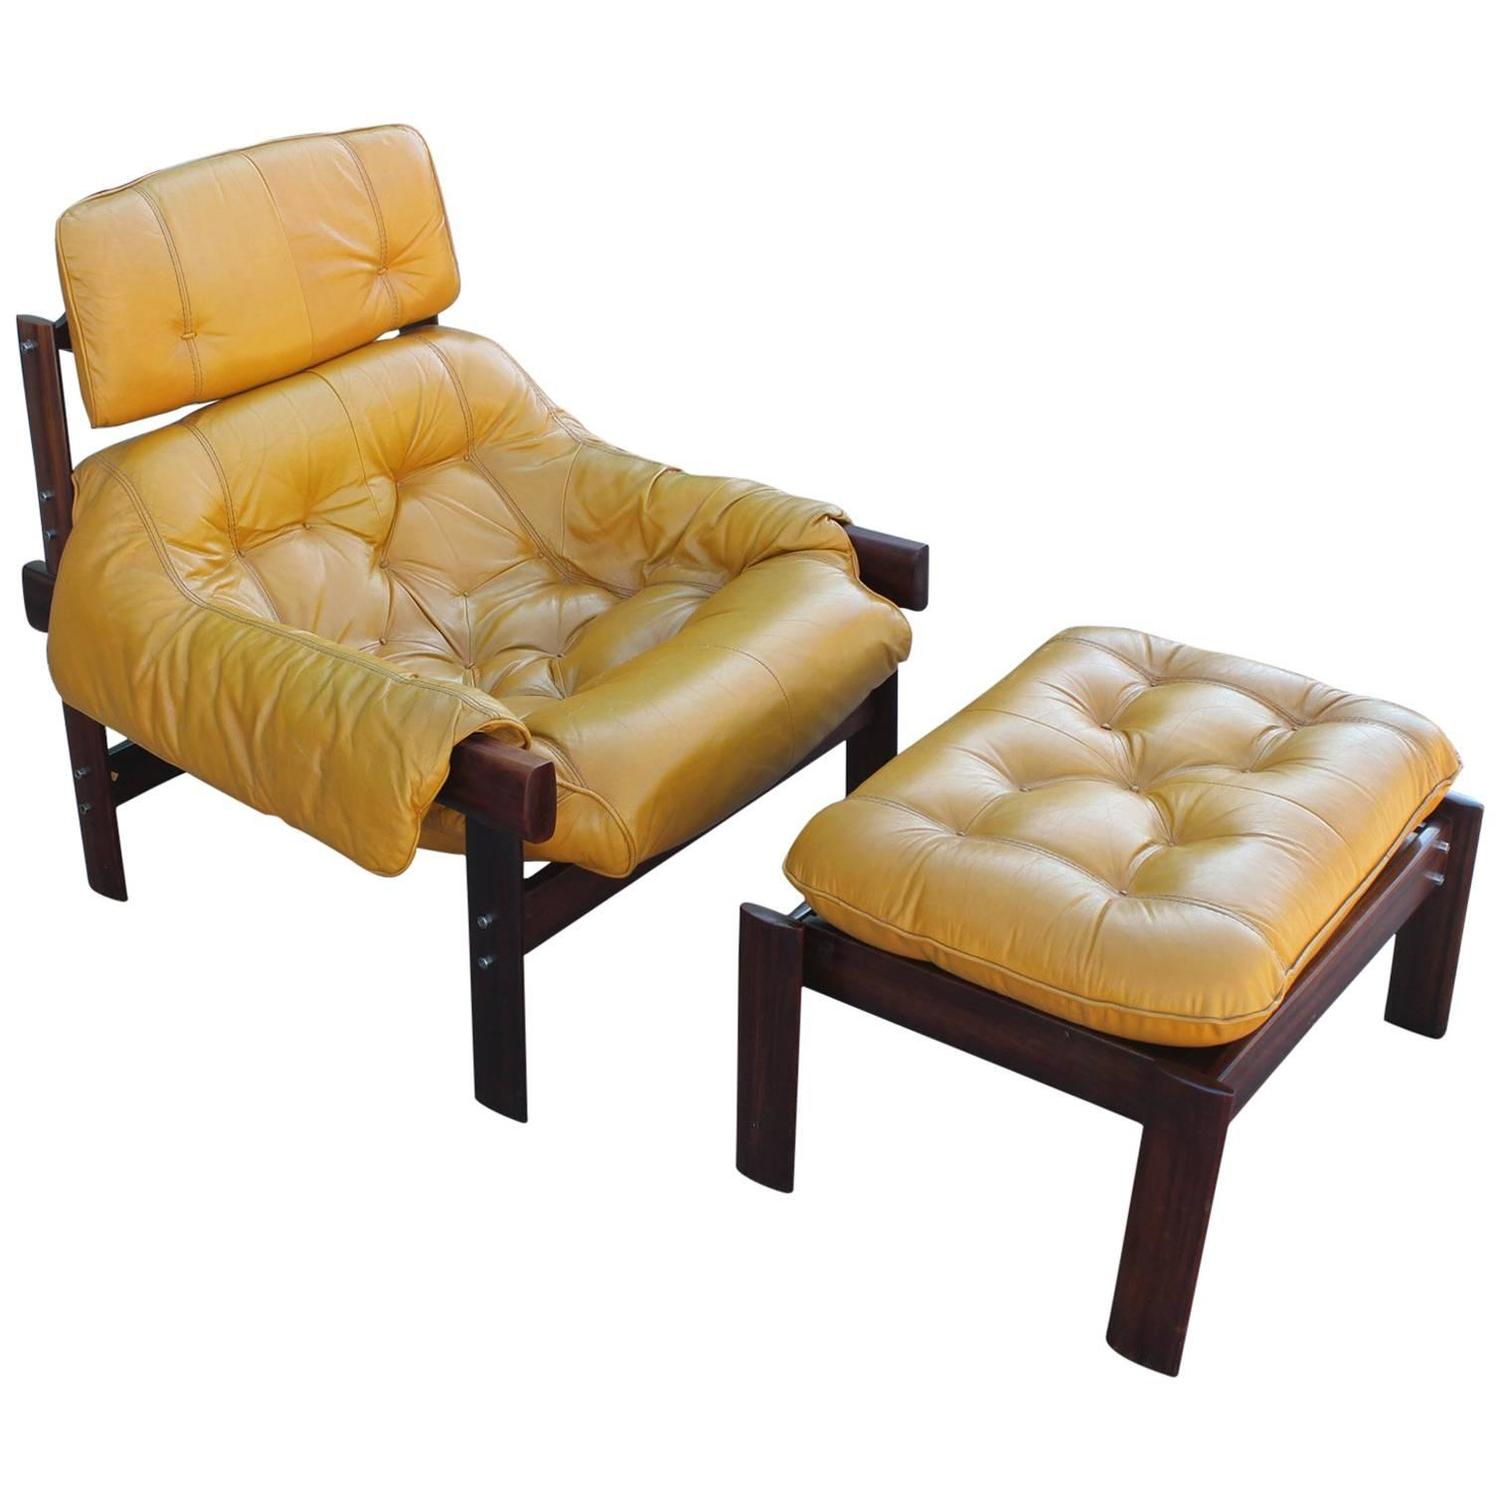 Percival Lafer Brazilian Mustard Yellow Lounge Chair with Ottoman